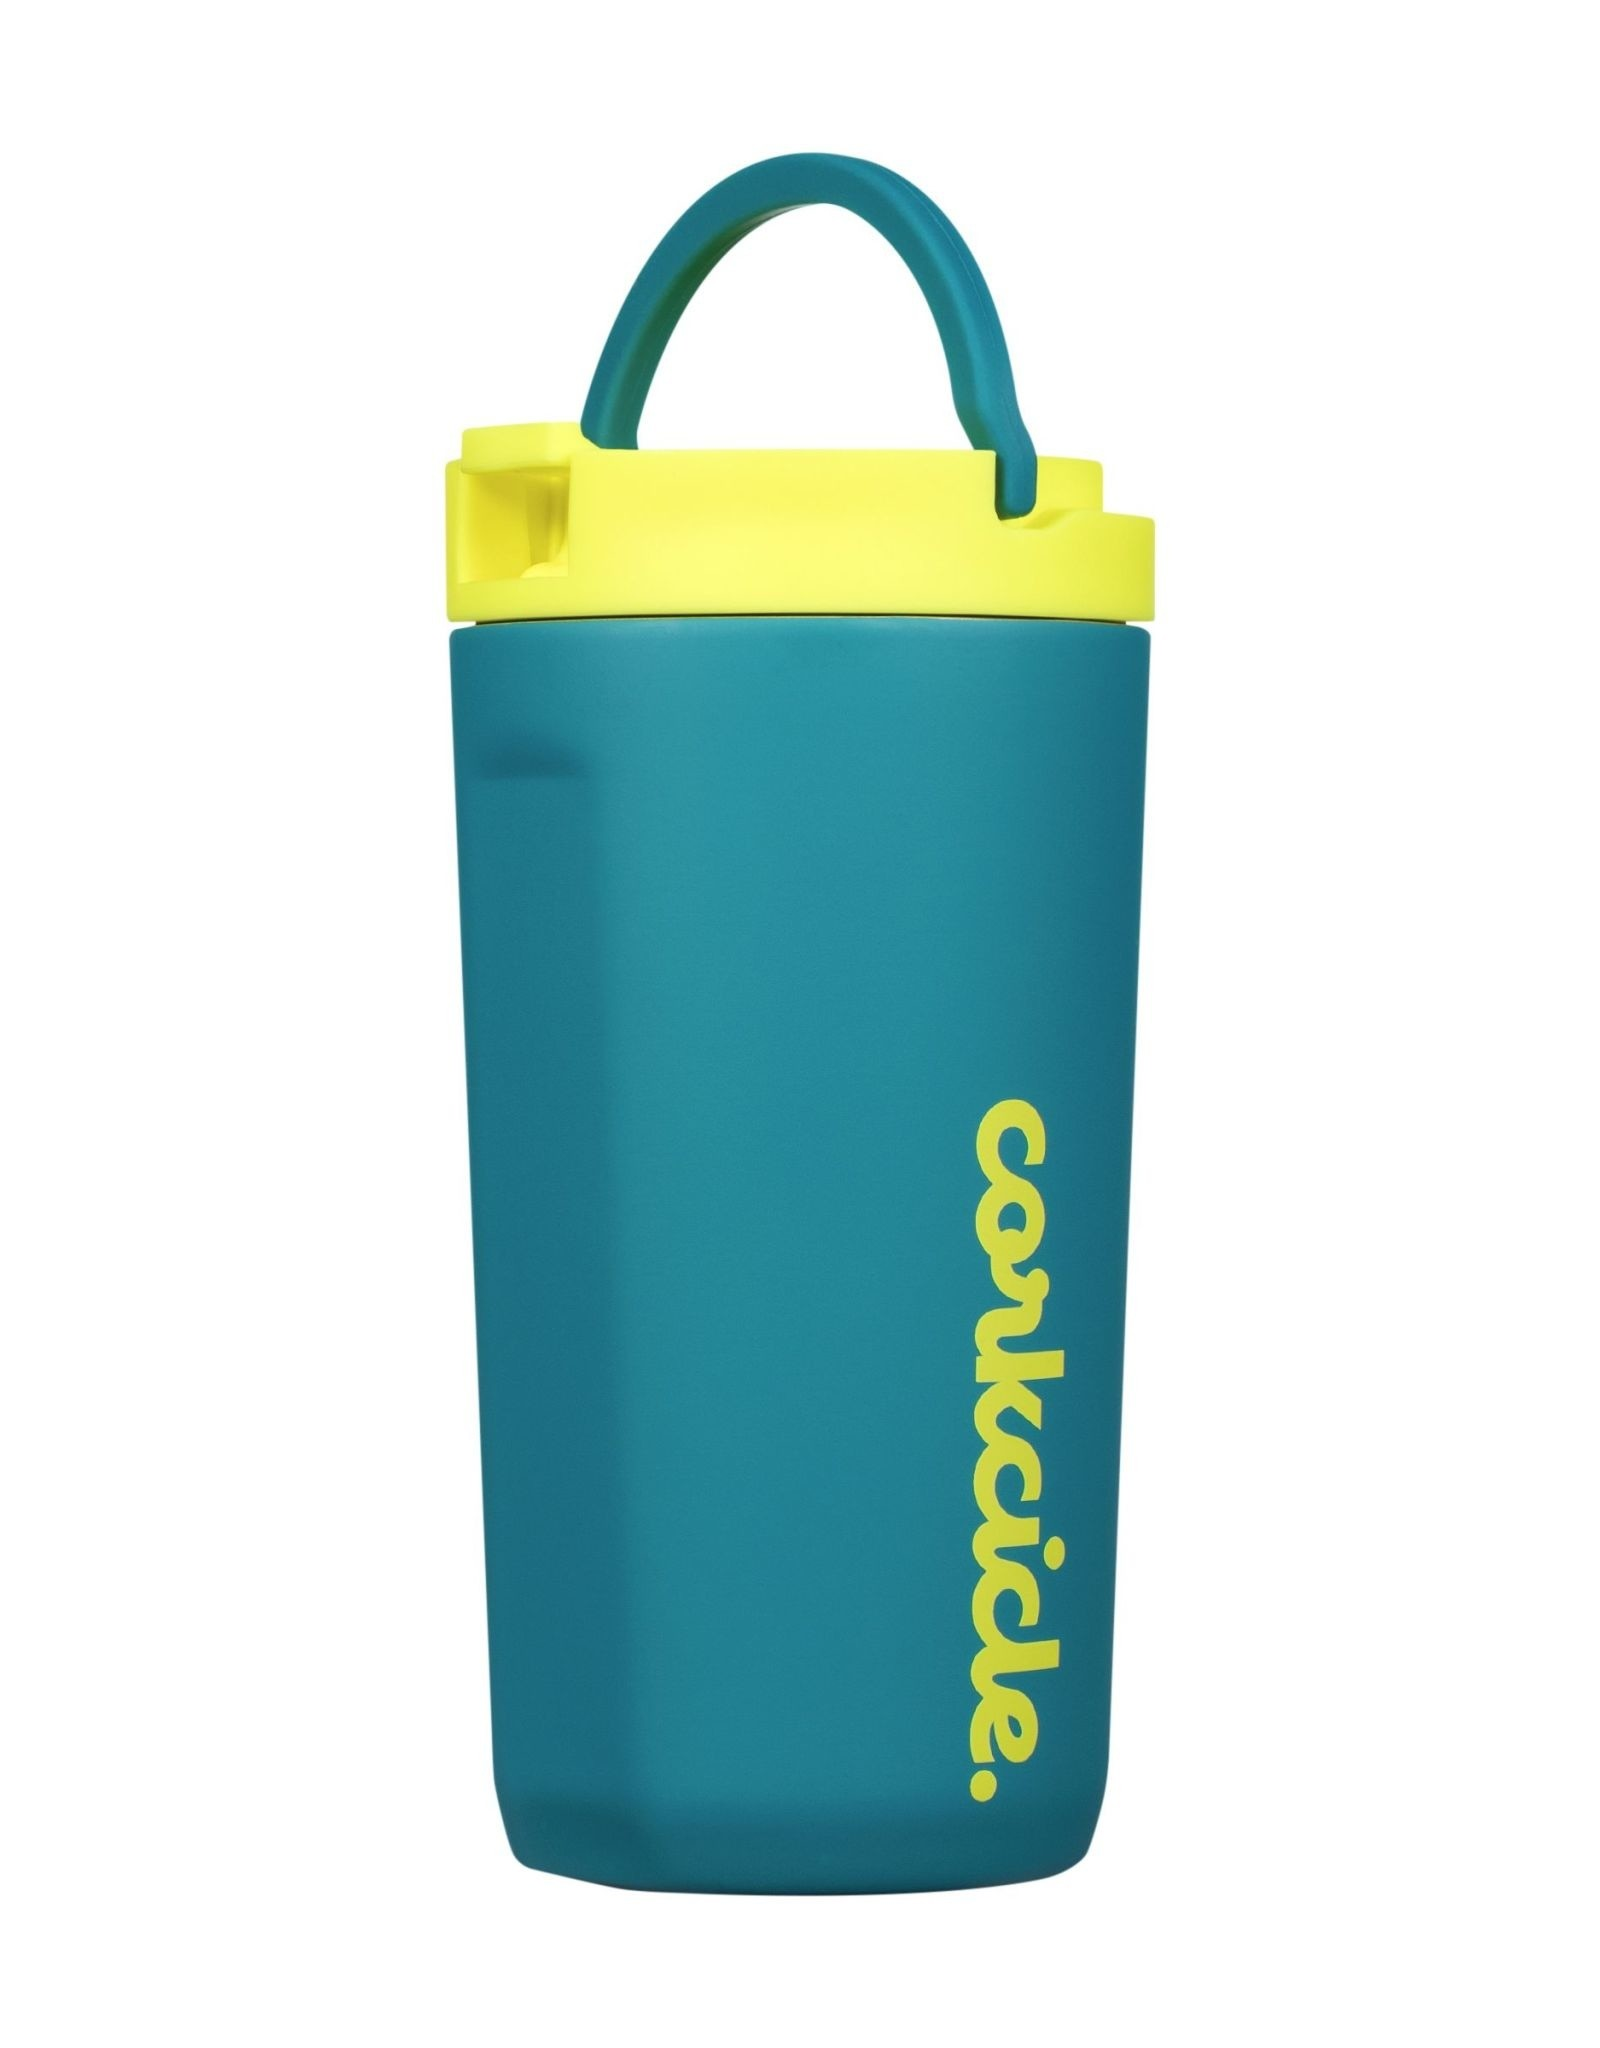 Corkcicle Bouteille enfant 12oz - Electric Tide